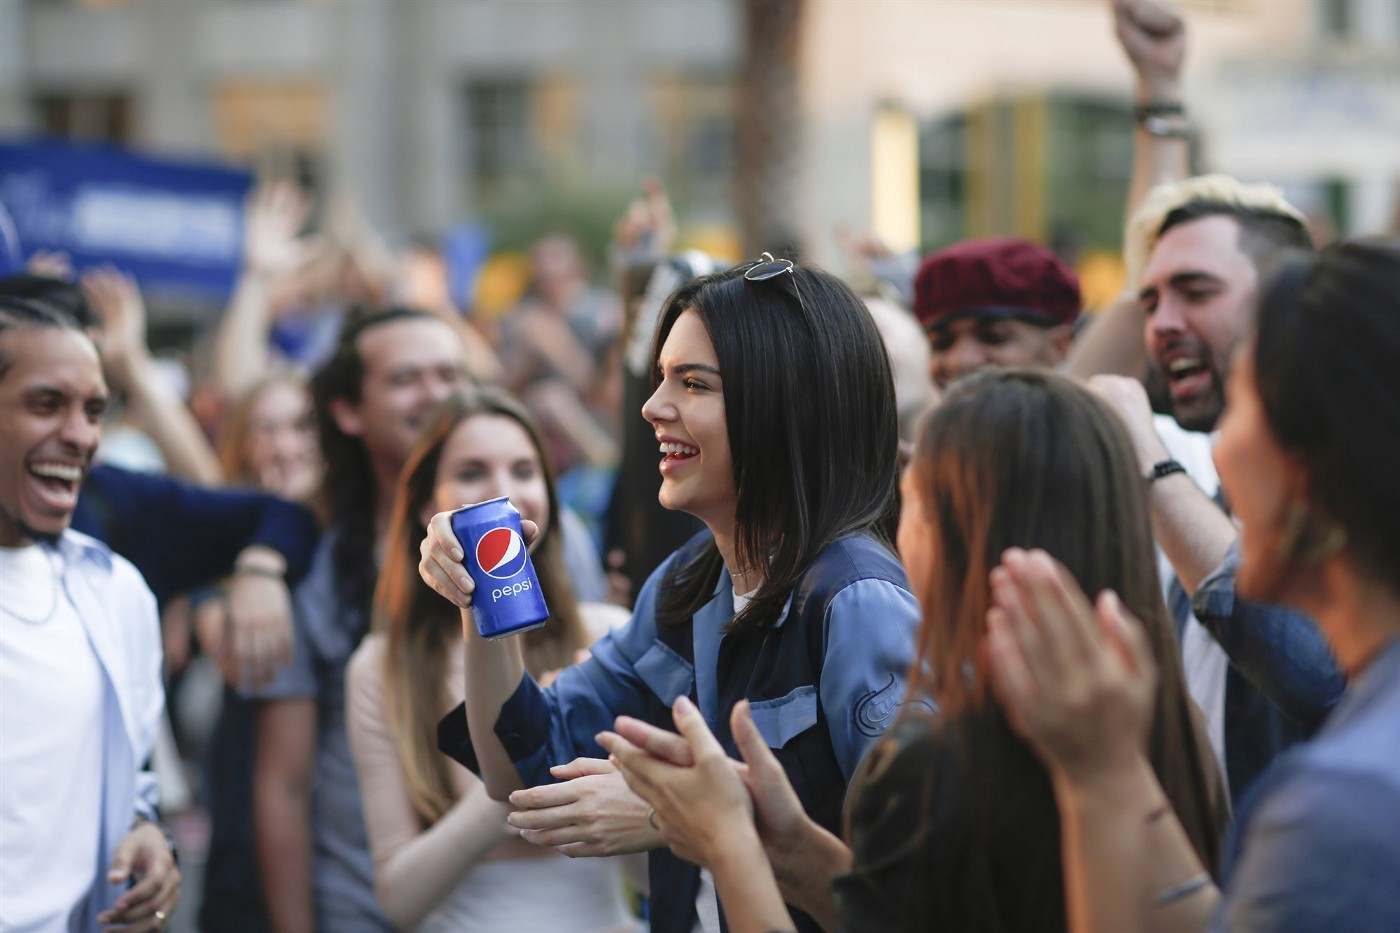 Brent Lewin / Getty Images for Pepsi